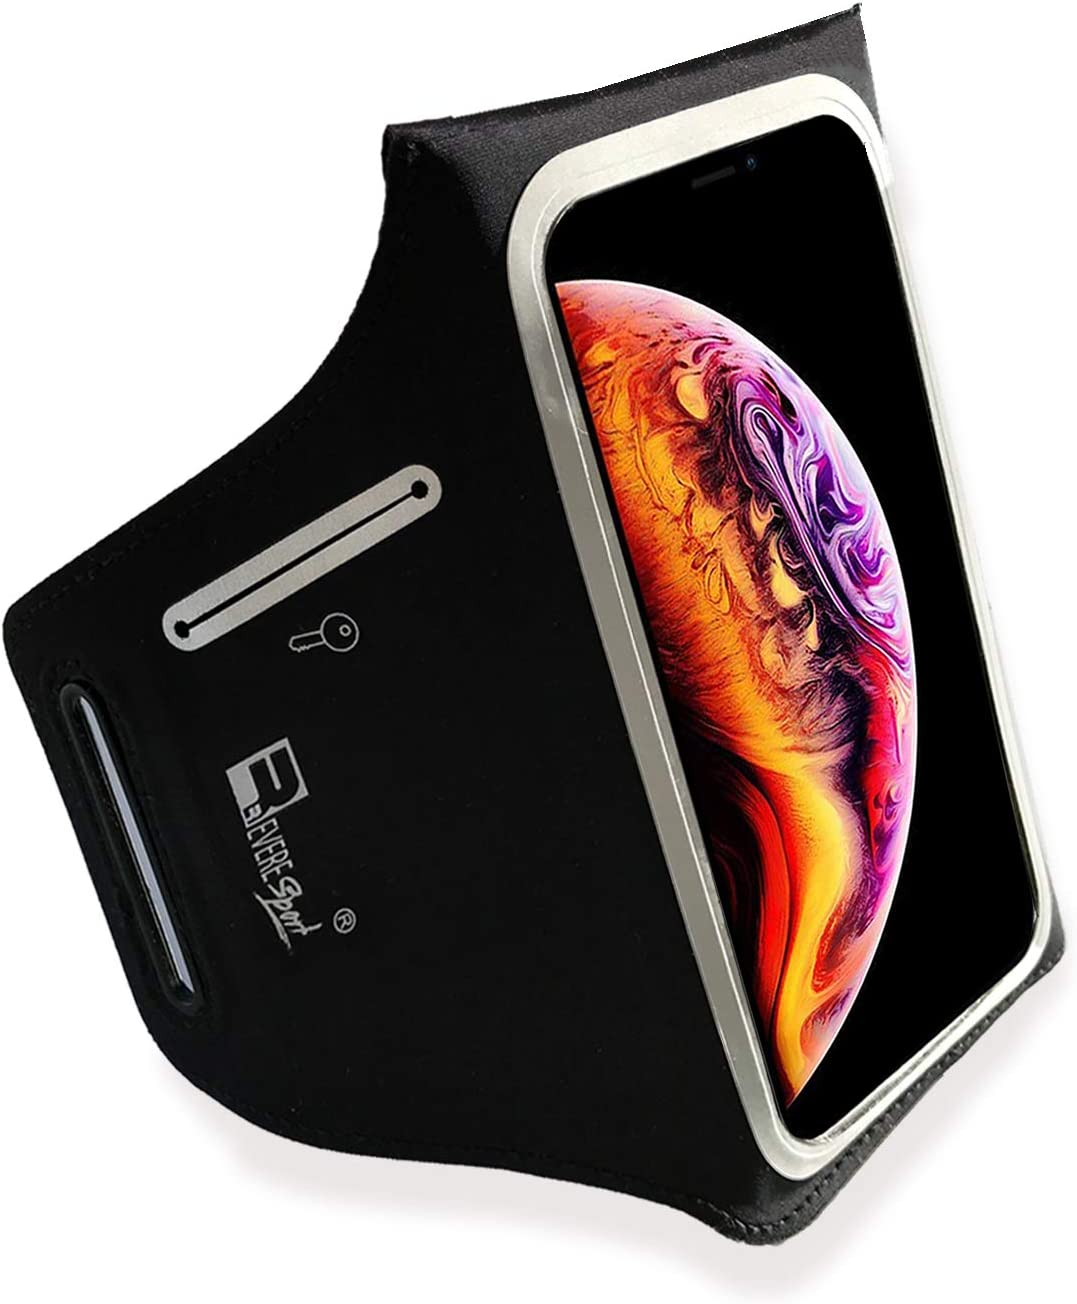 RevereSport Waterproof Running Armband for iPhone 11 Pro Max. Phone Arm Holder for Runners, Gym Workouts